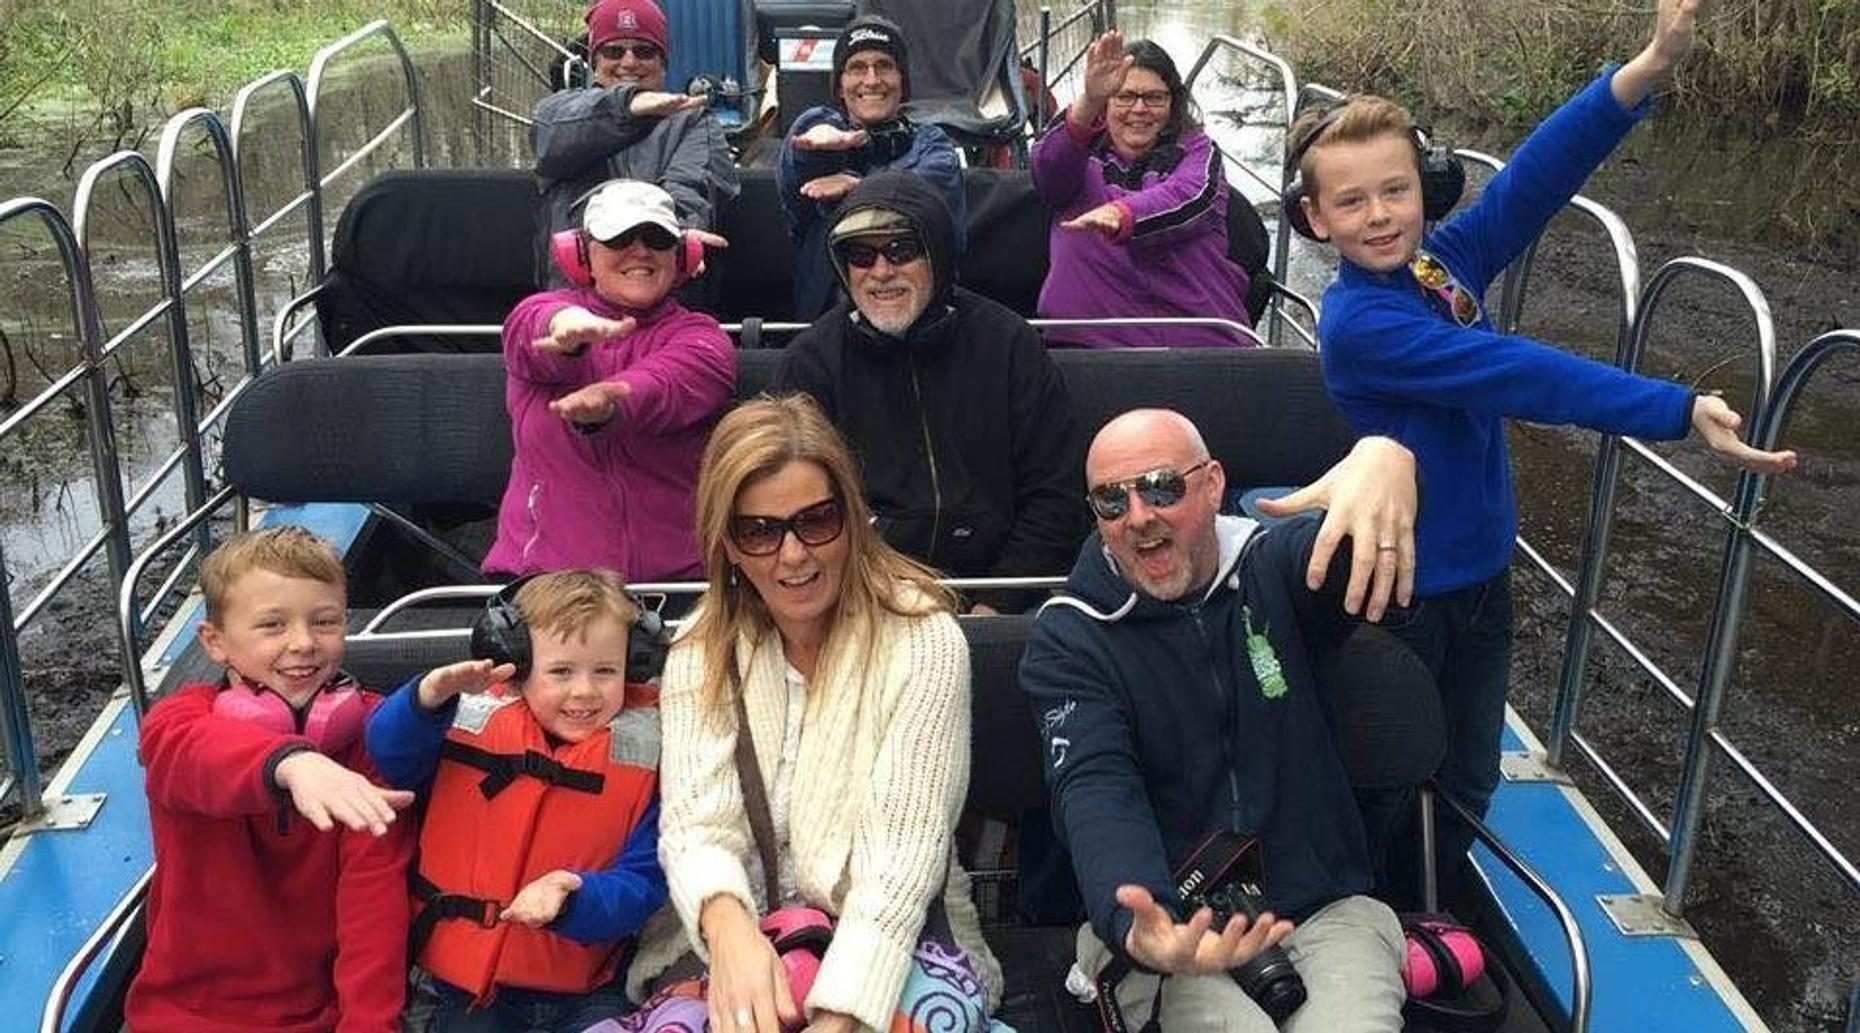 Airboat Ride in Florida